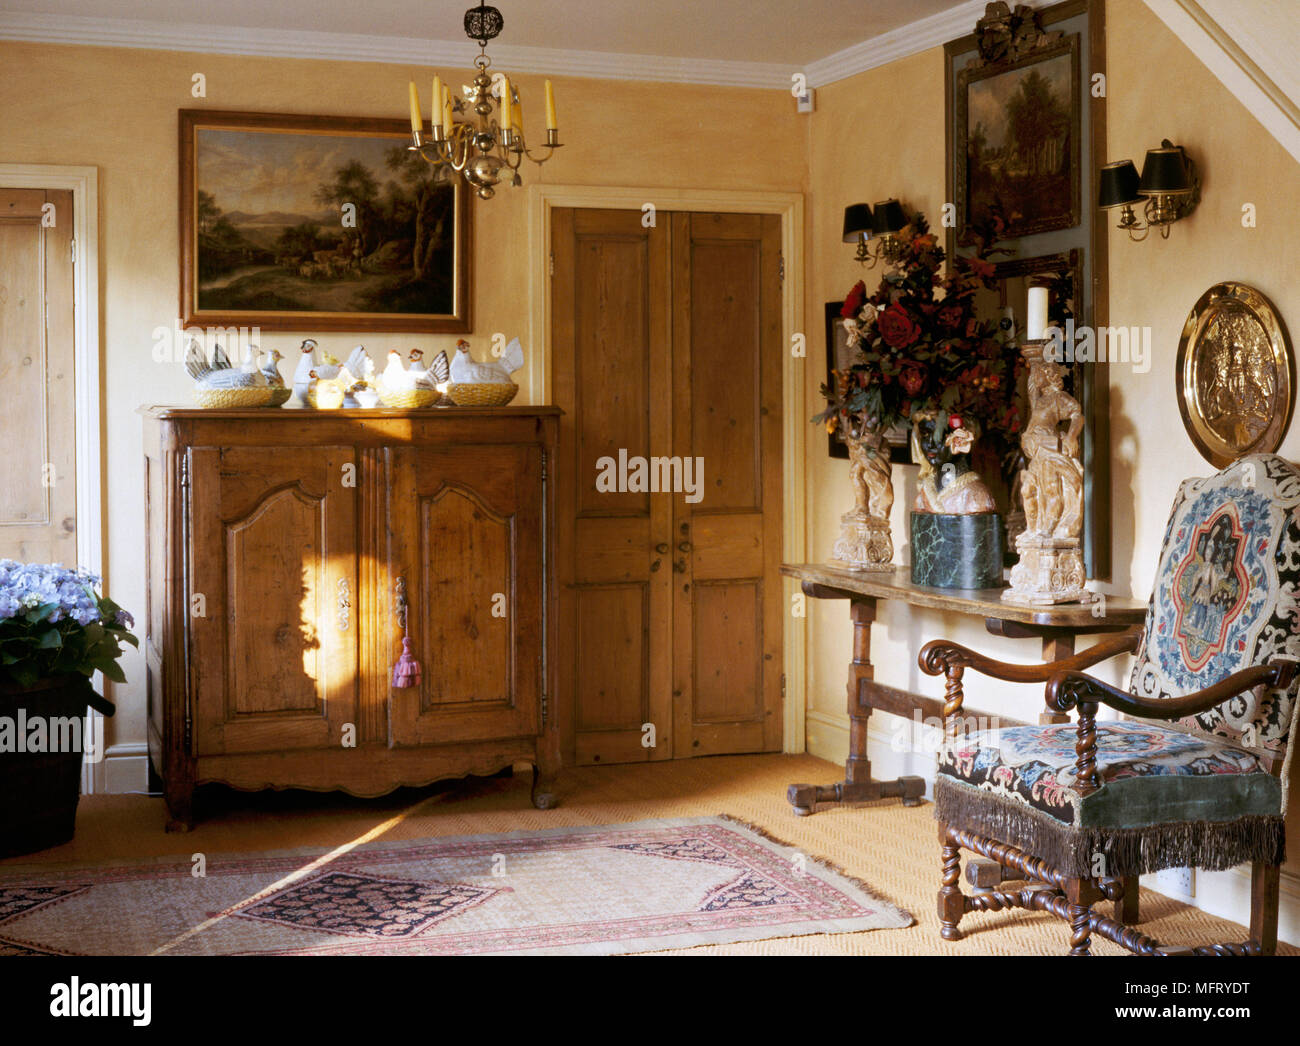 A traditional yellow entrance hall a pine wooden cabinet with collection of Staffordshire pottery hens  chandelier Jacobean style chair wood table Stock Photo